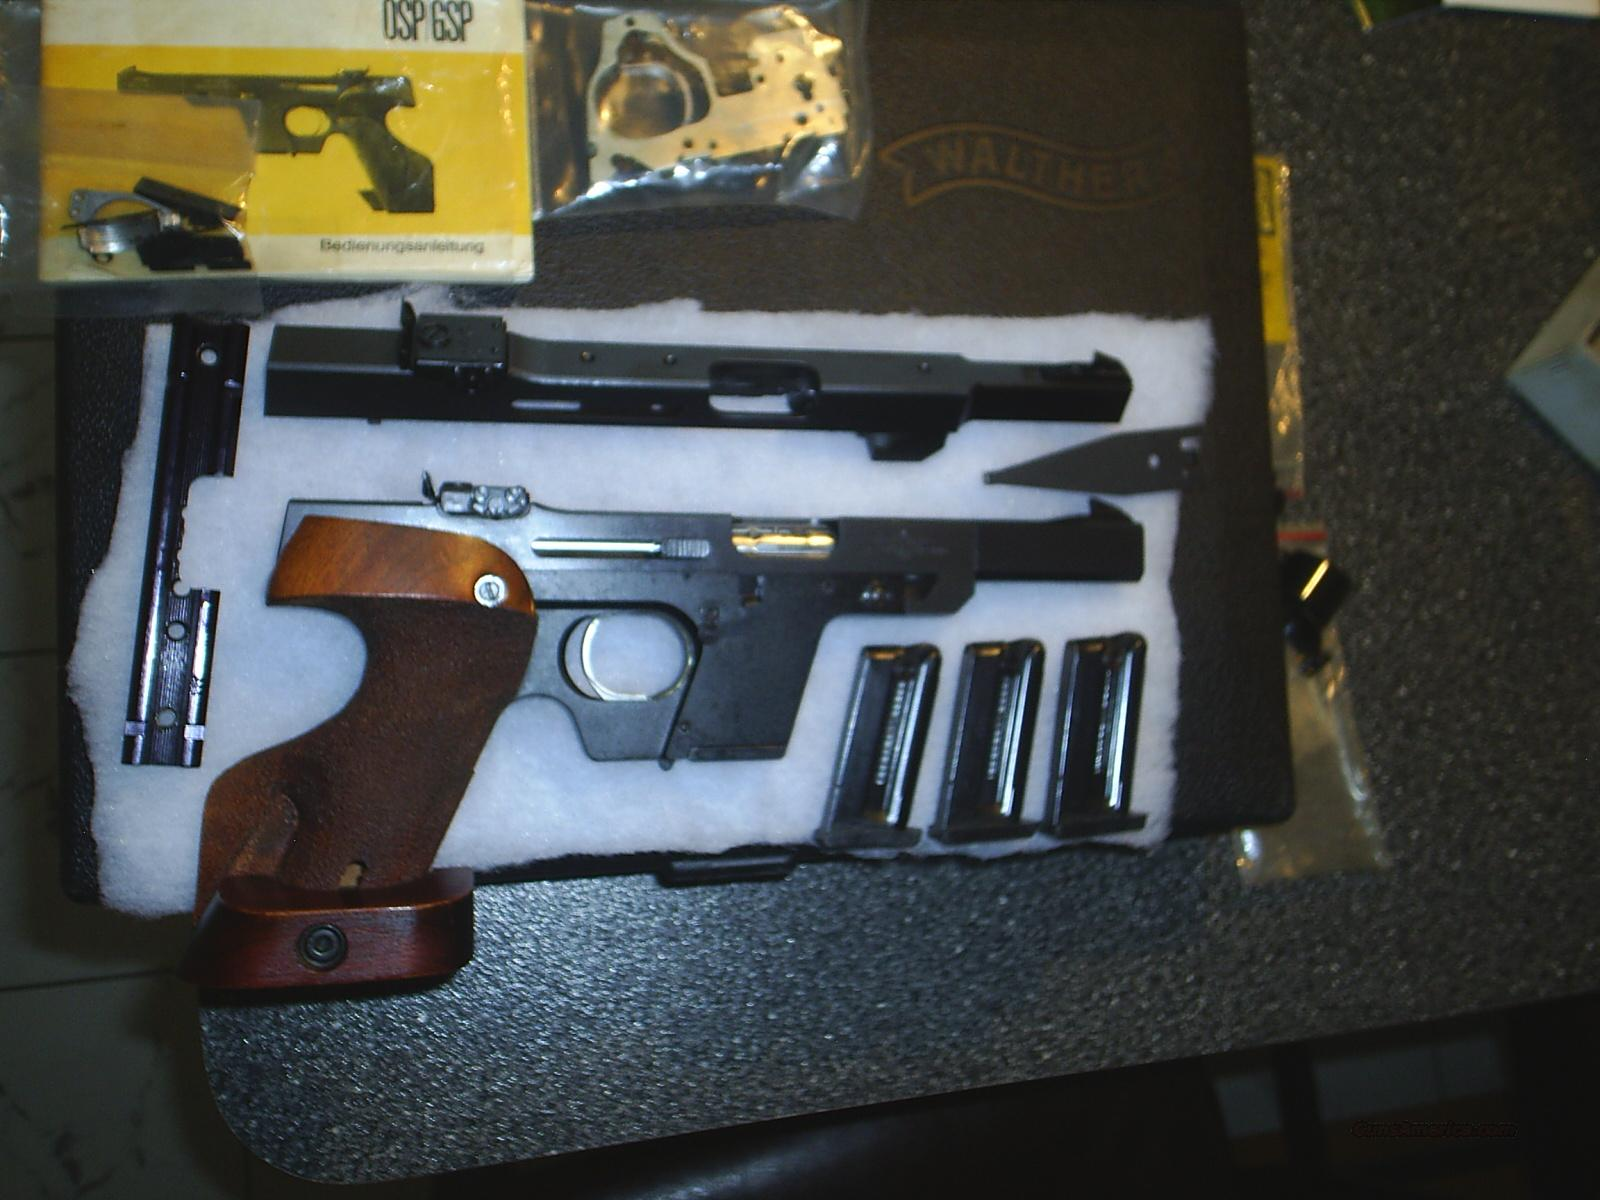 walther gsp 22lr target pistol with accessories for sale rh gunsamerica com Walther OSP Walther Target Pistols